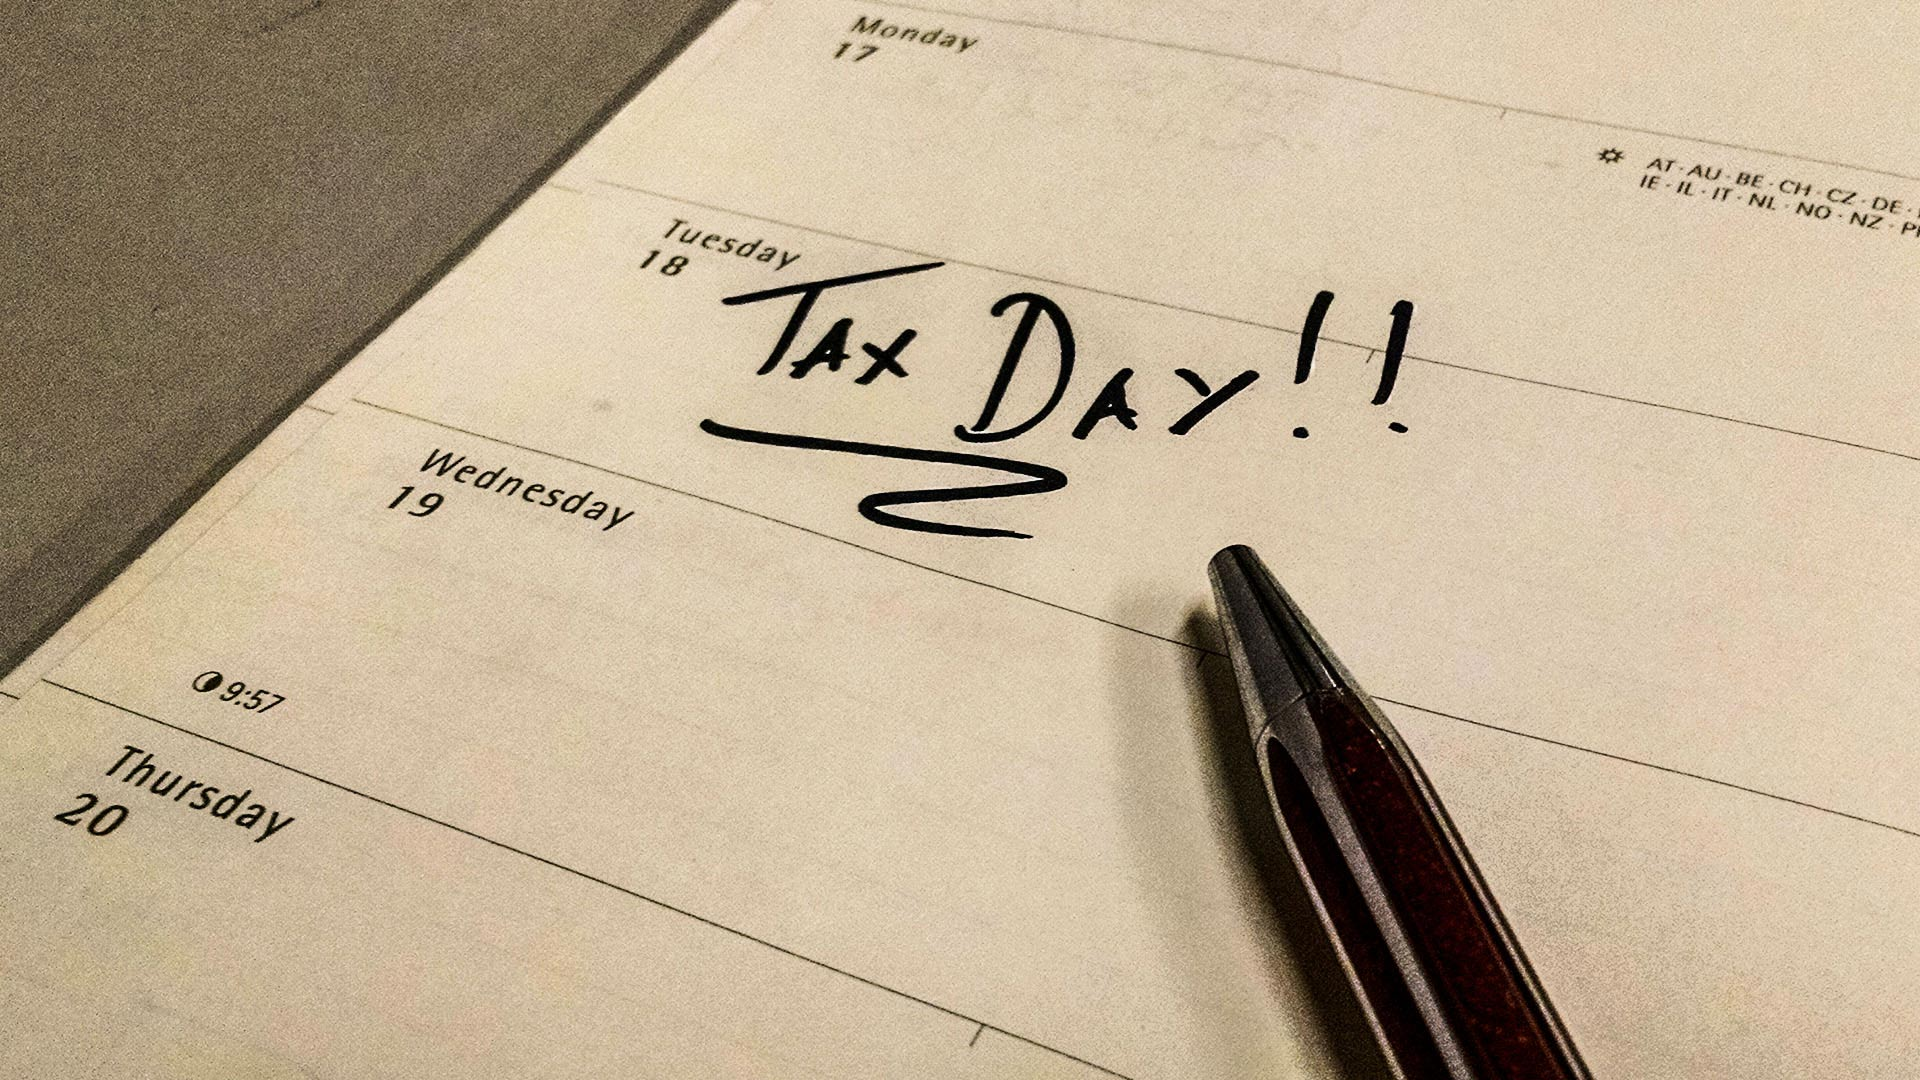 Tax Day 2017 is April 18.